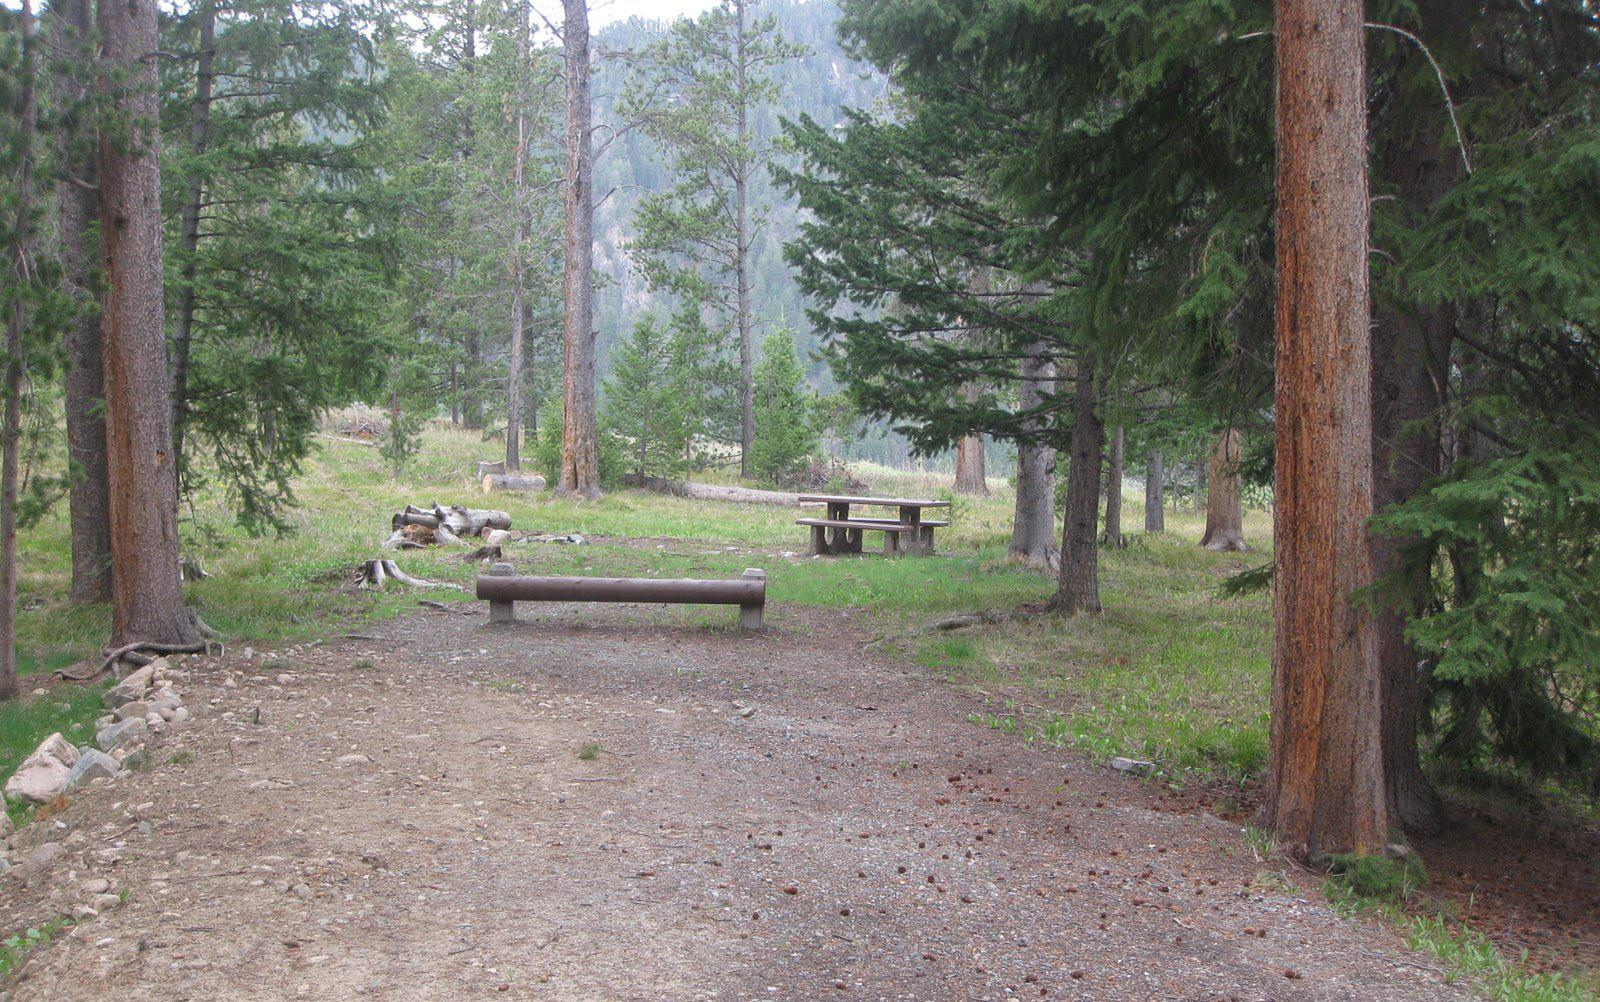 Site C21, campsite surrounded by pine trees, picnic table & fire ringSite C21